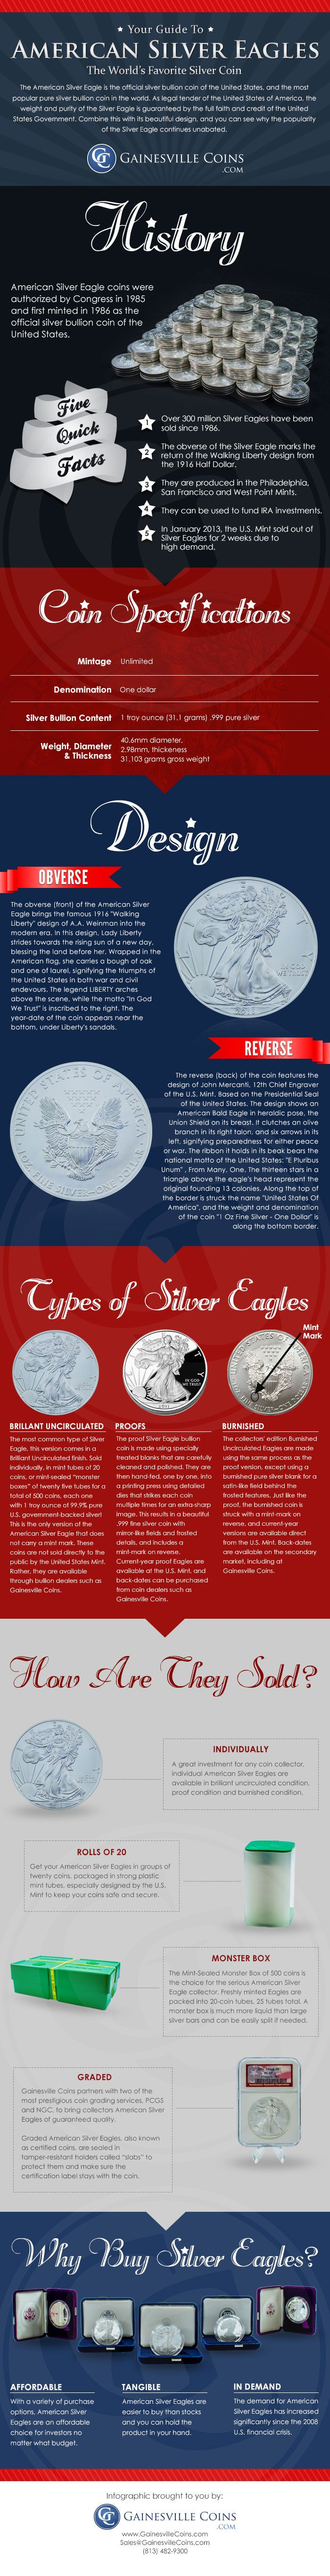 Infographic: American Silver Eagles - the World's favourite silver coin